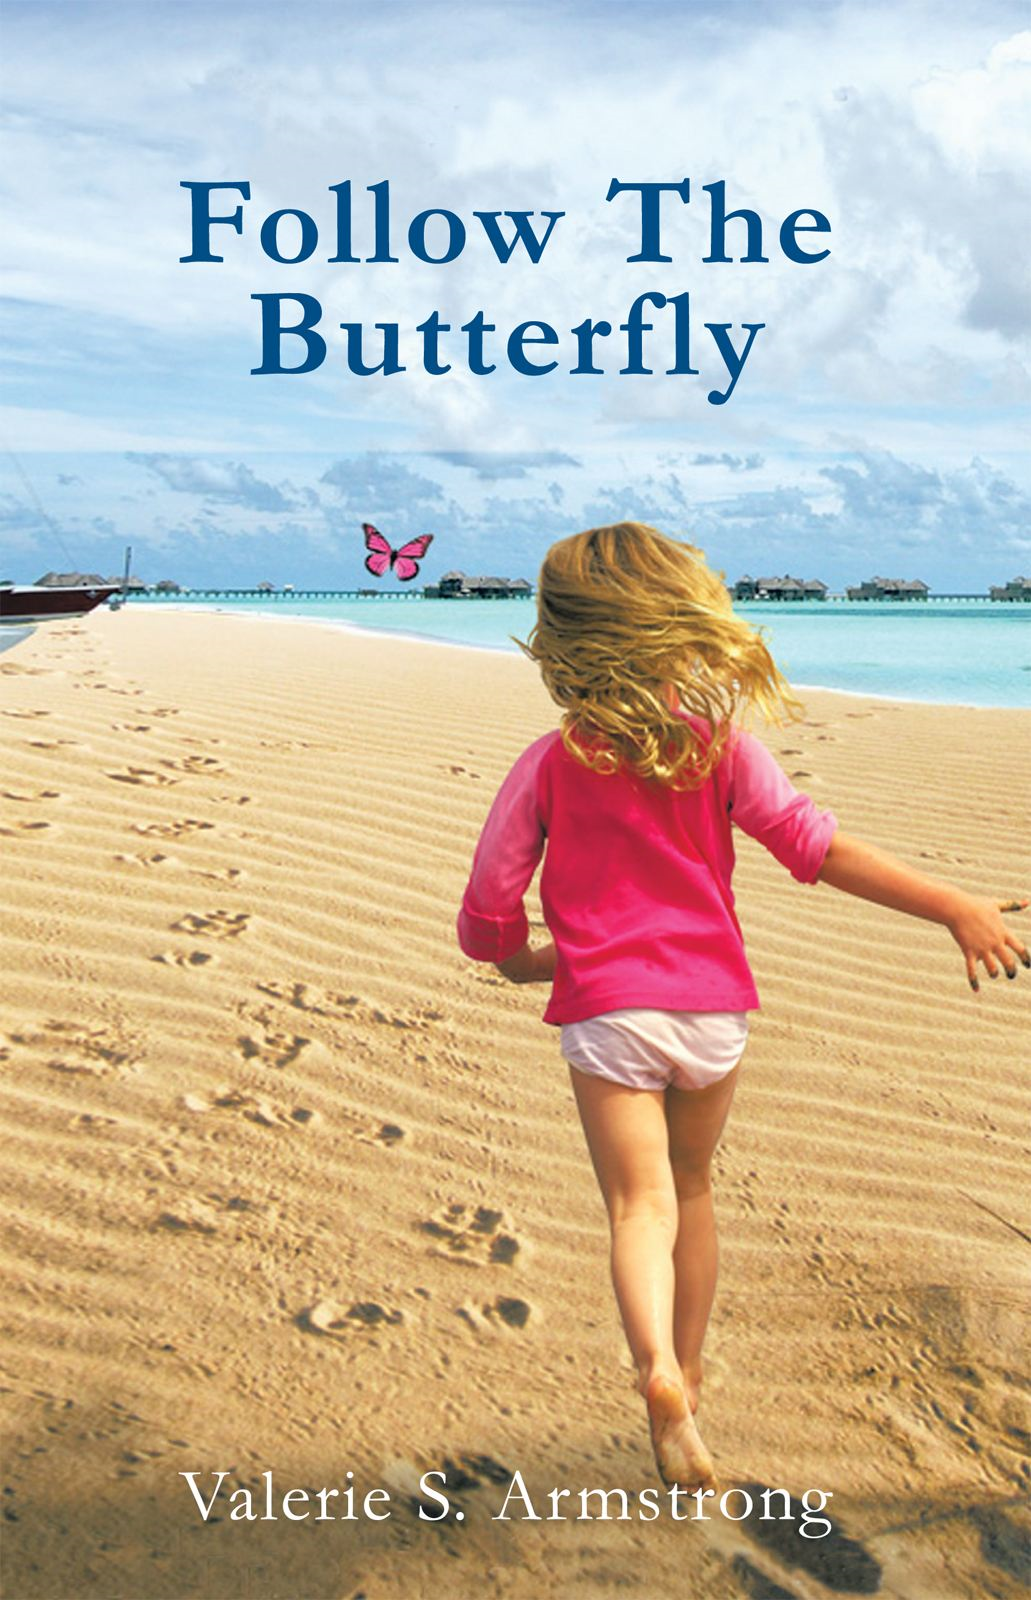 Follow The Butterfly By: Valerie S. Armstrong